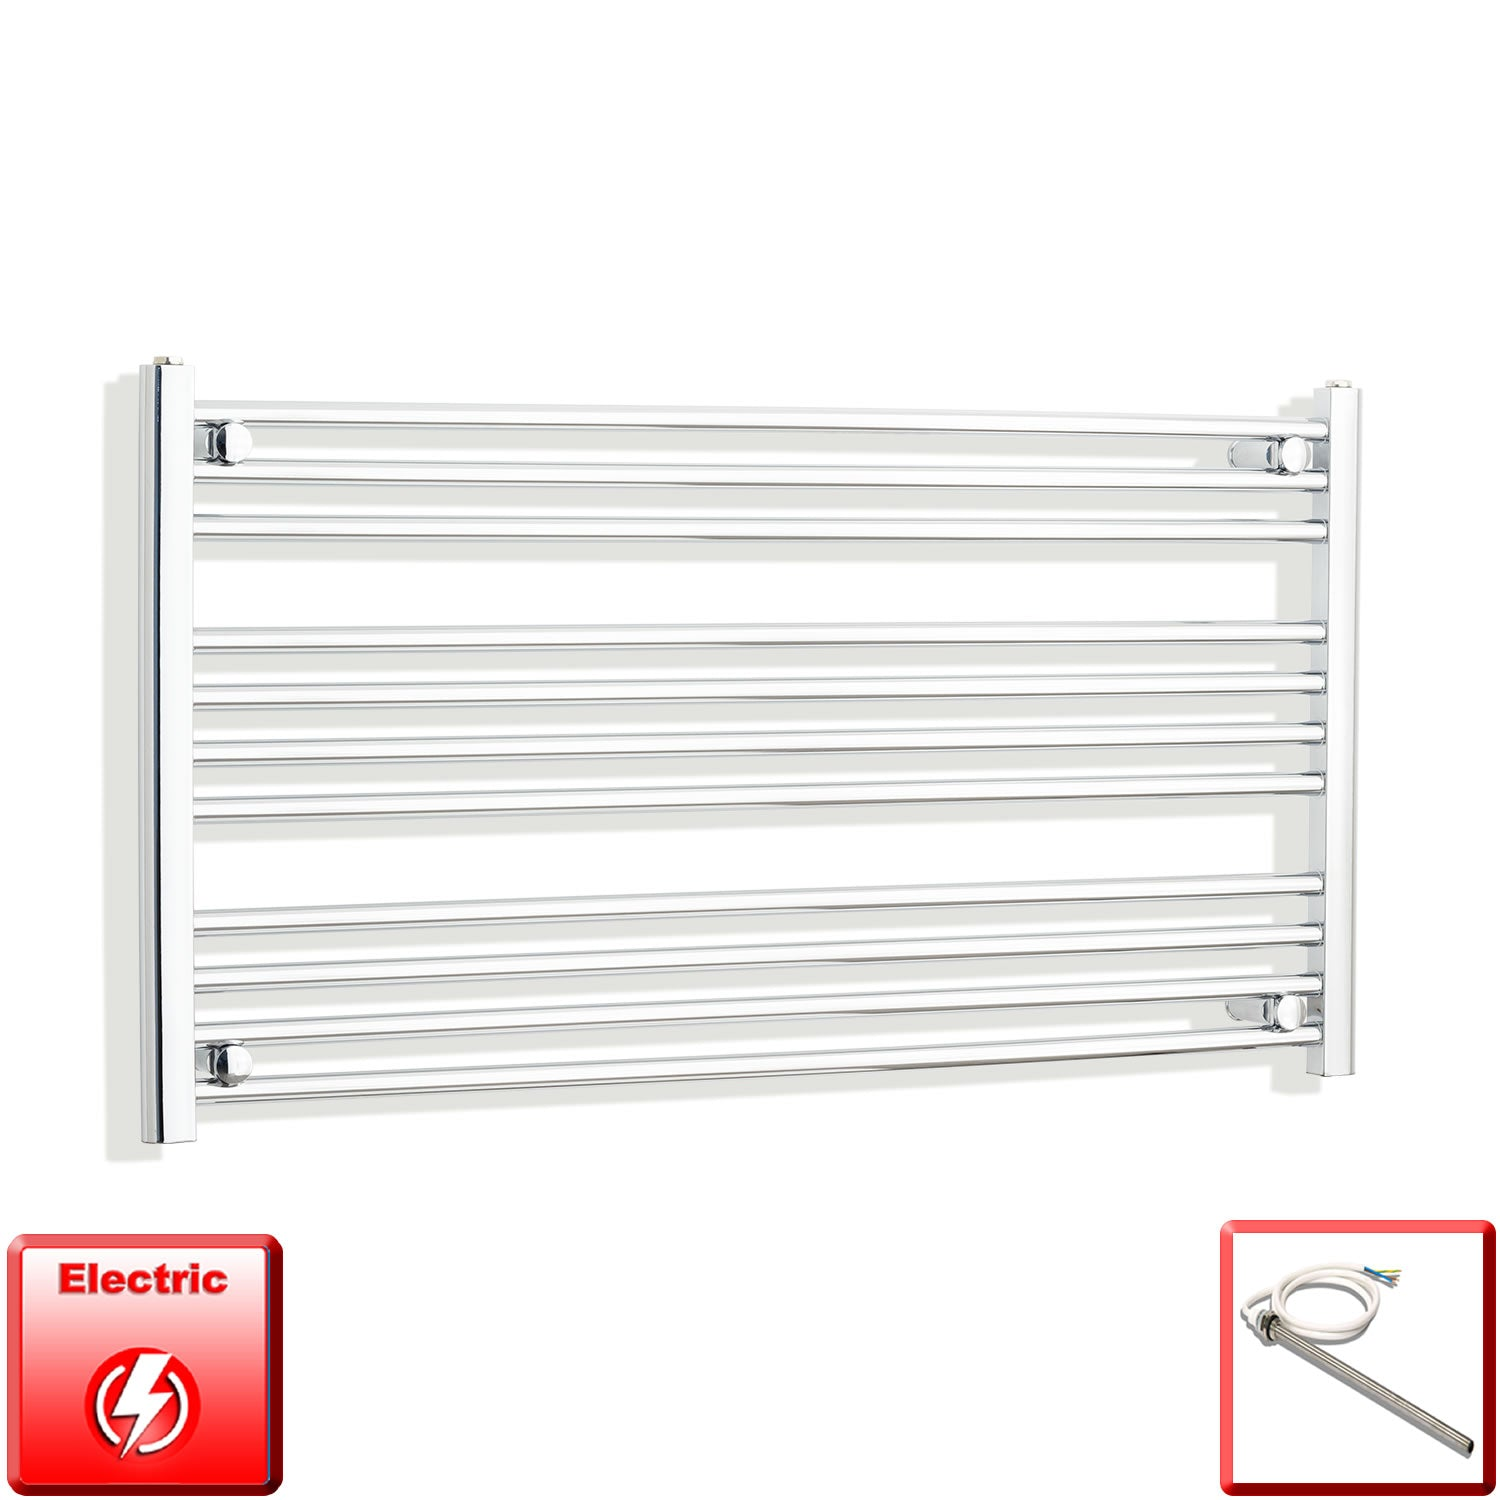 950mm Wide 600mm High Pre-Filled Chrome Electric Towel Rail Radiator With Single Heat Element